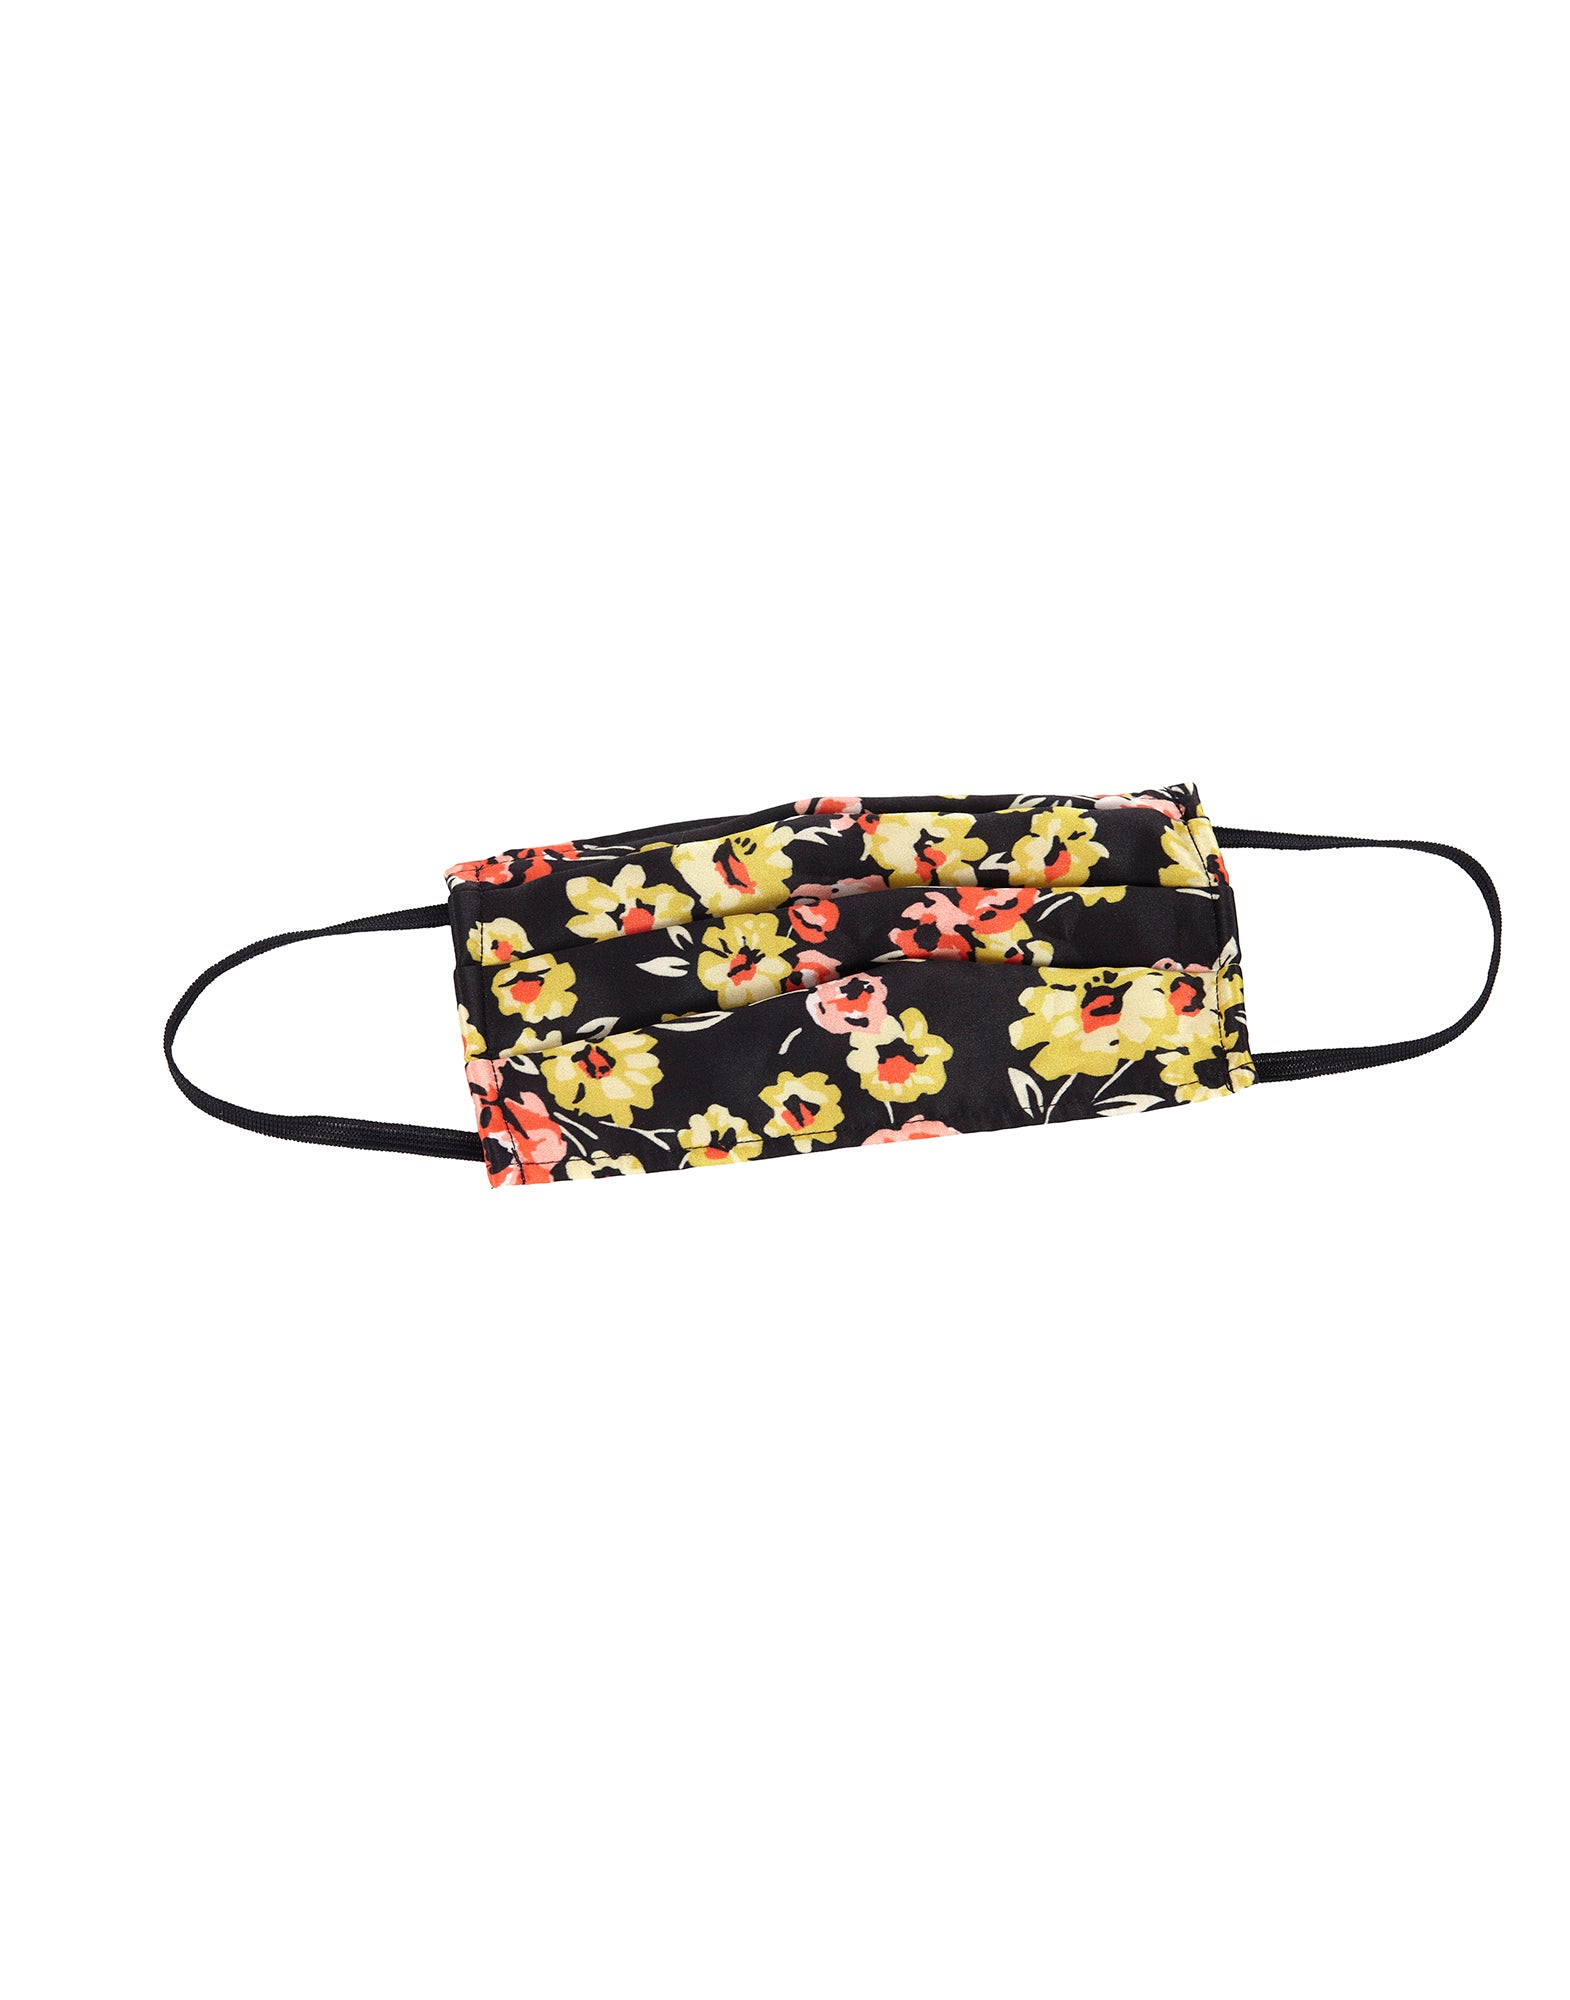 Flower print lace face mask